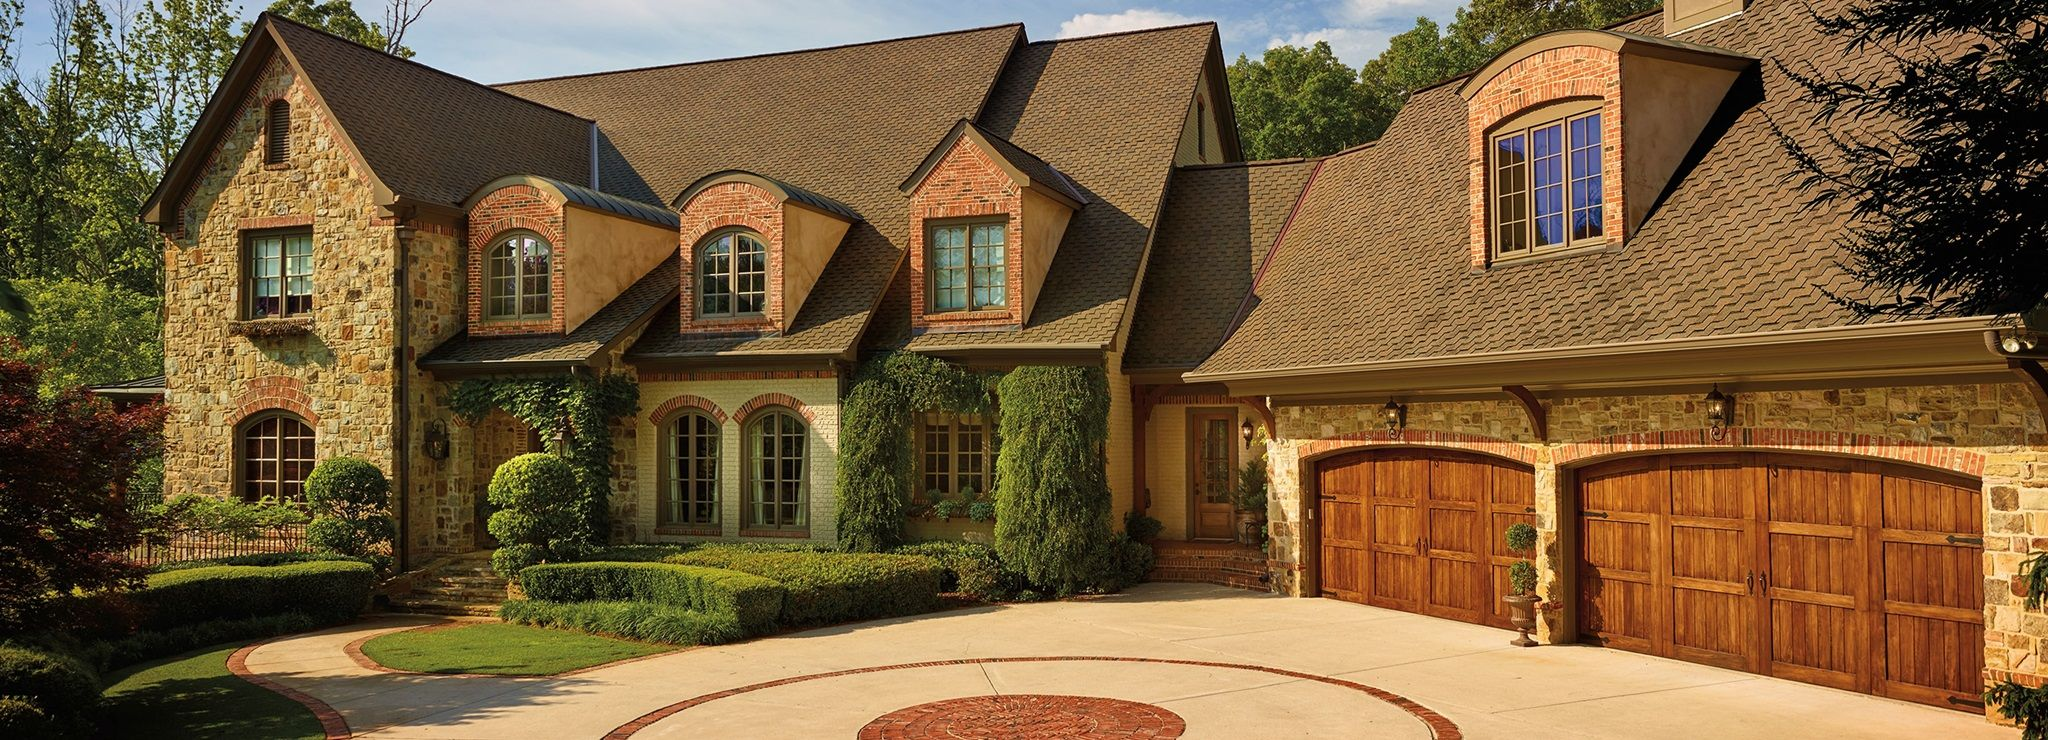 Best Gaf Grand Sequoia Roofing Shingles Exterior Remodel 400 x 300